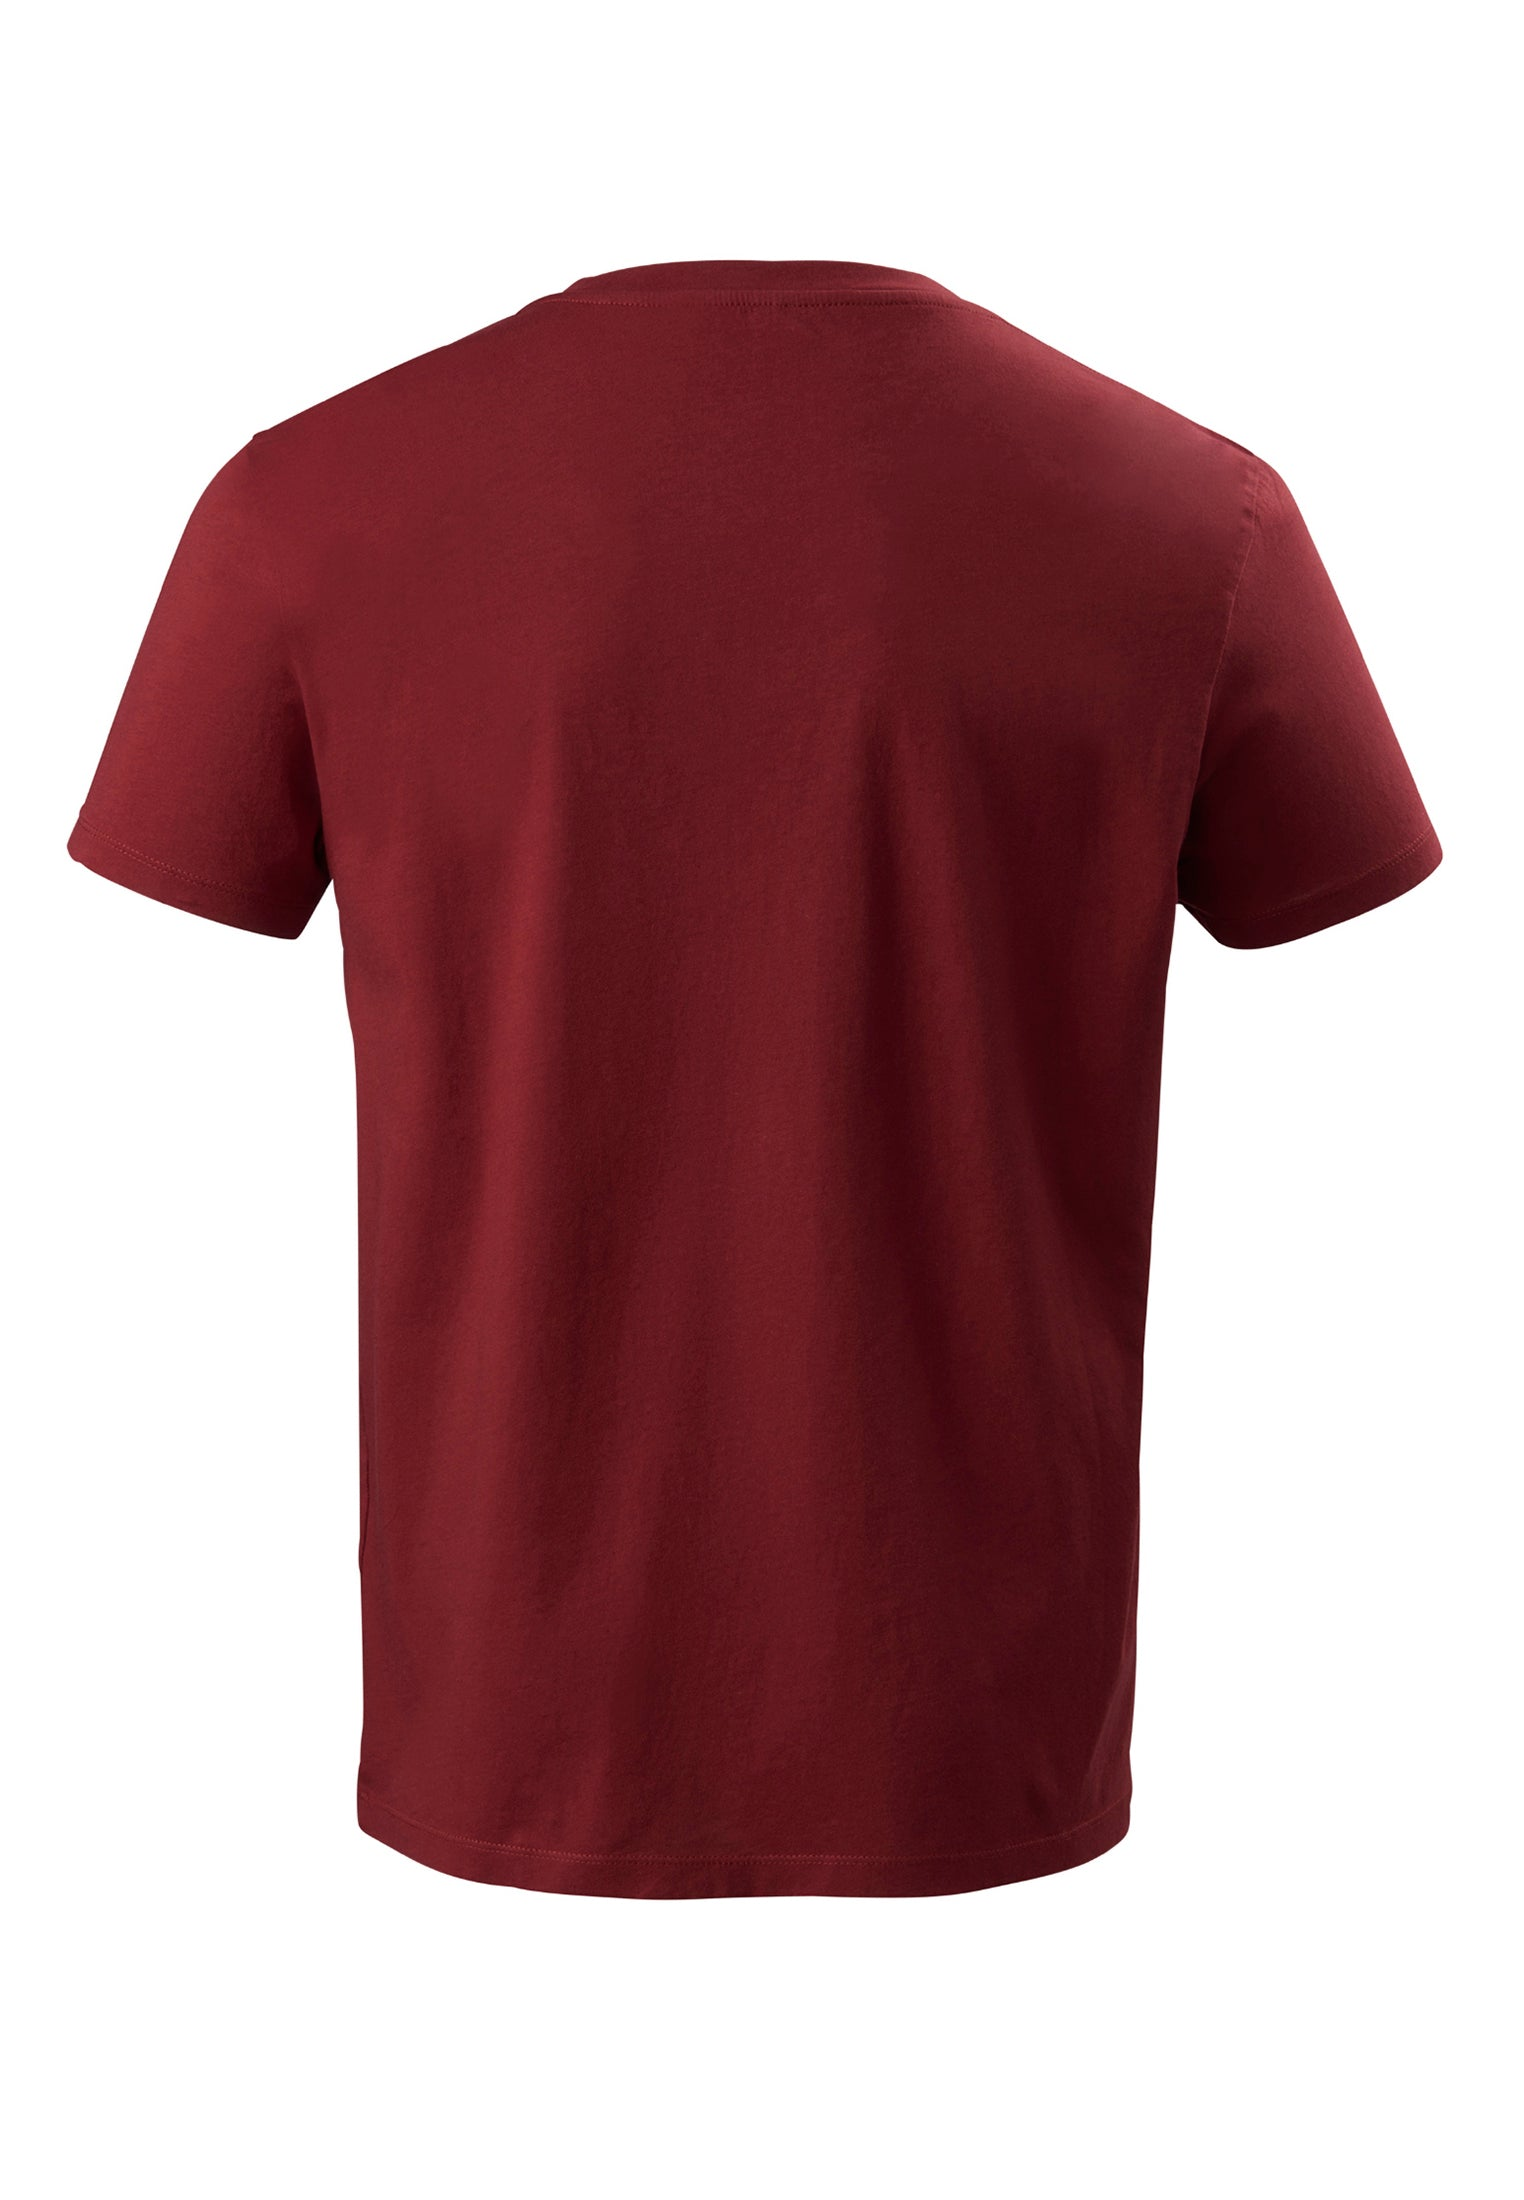 The V-Neck T-Shirt Bordeaux